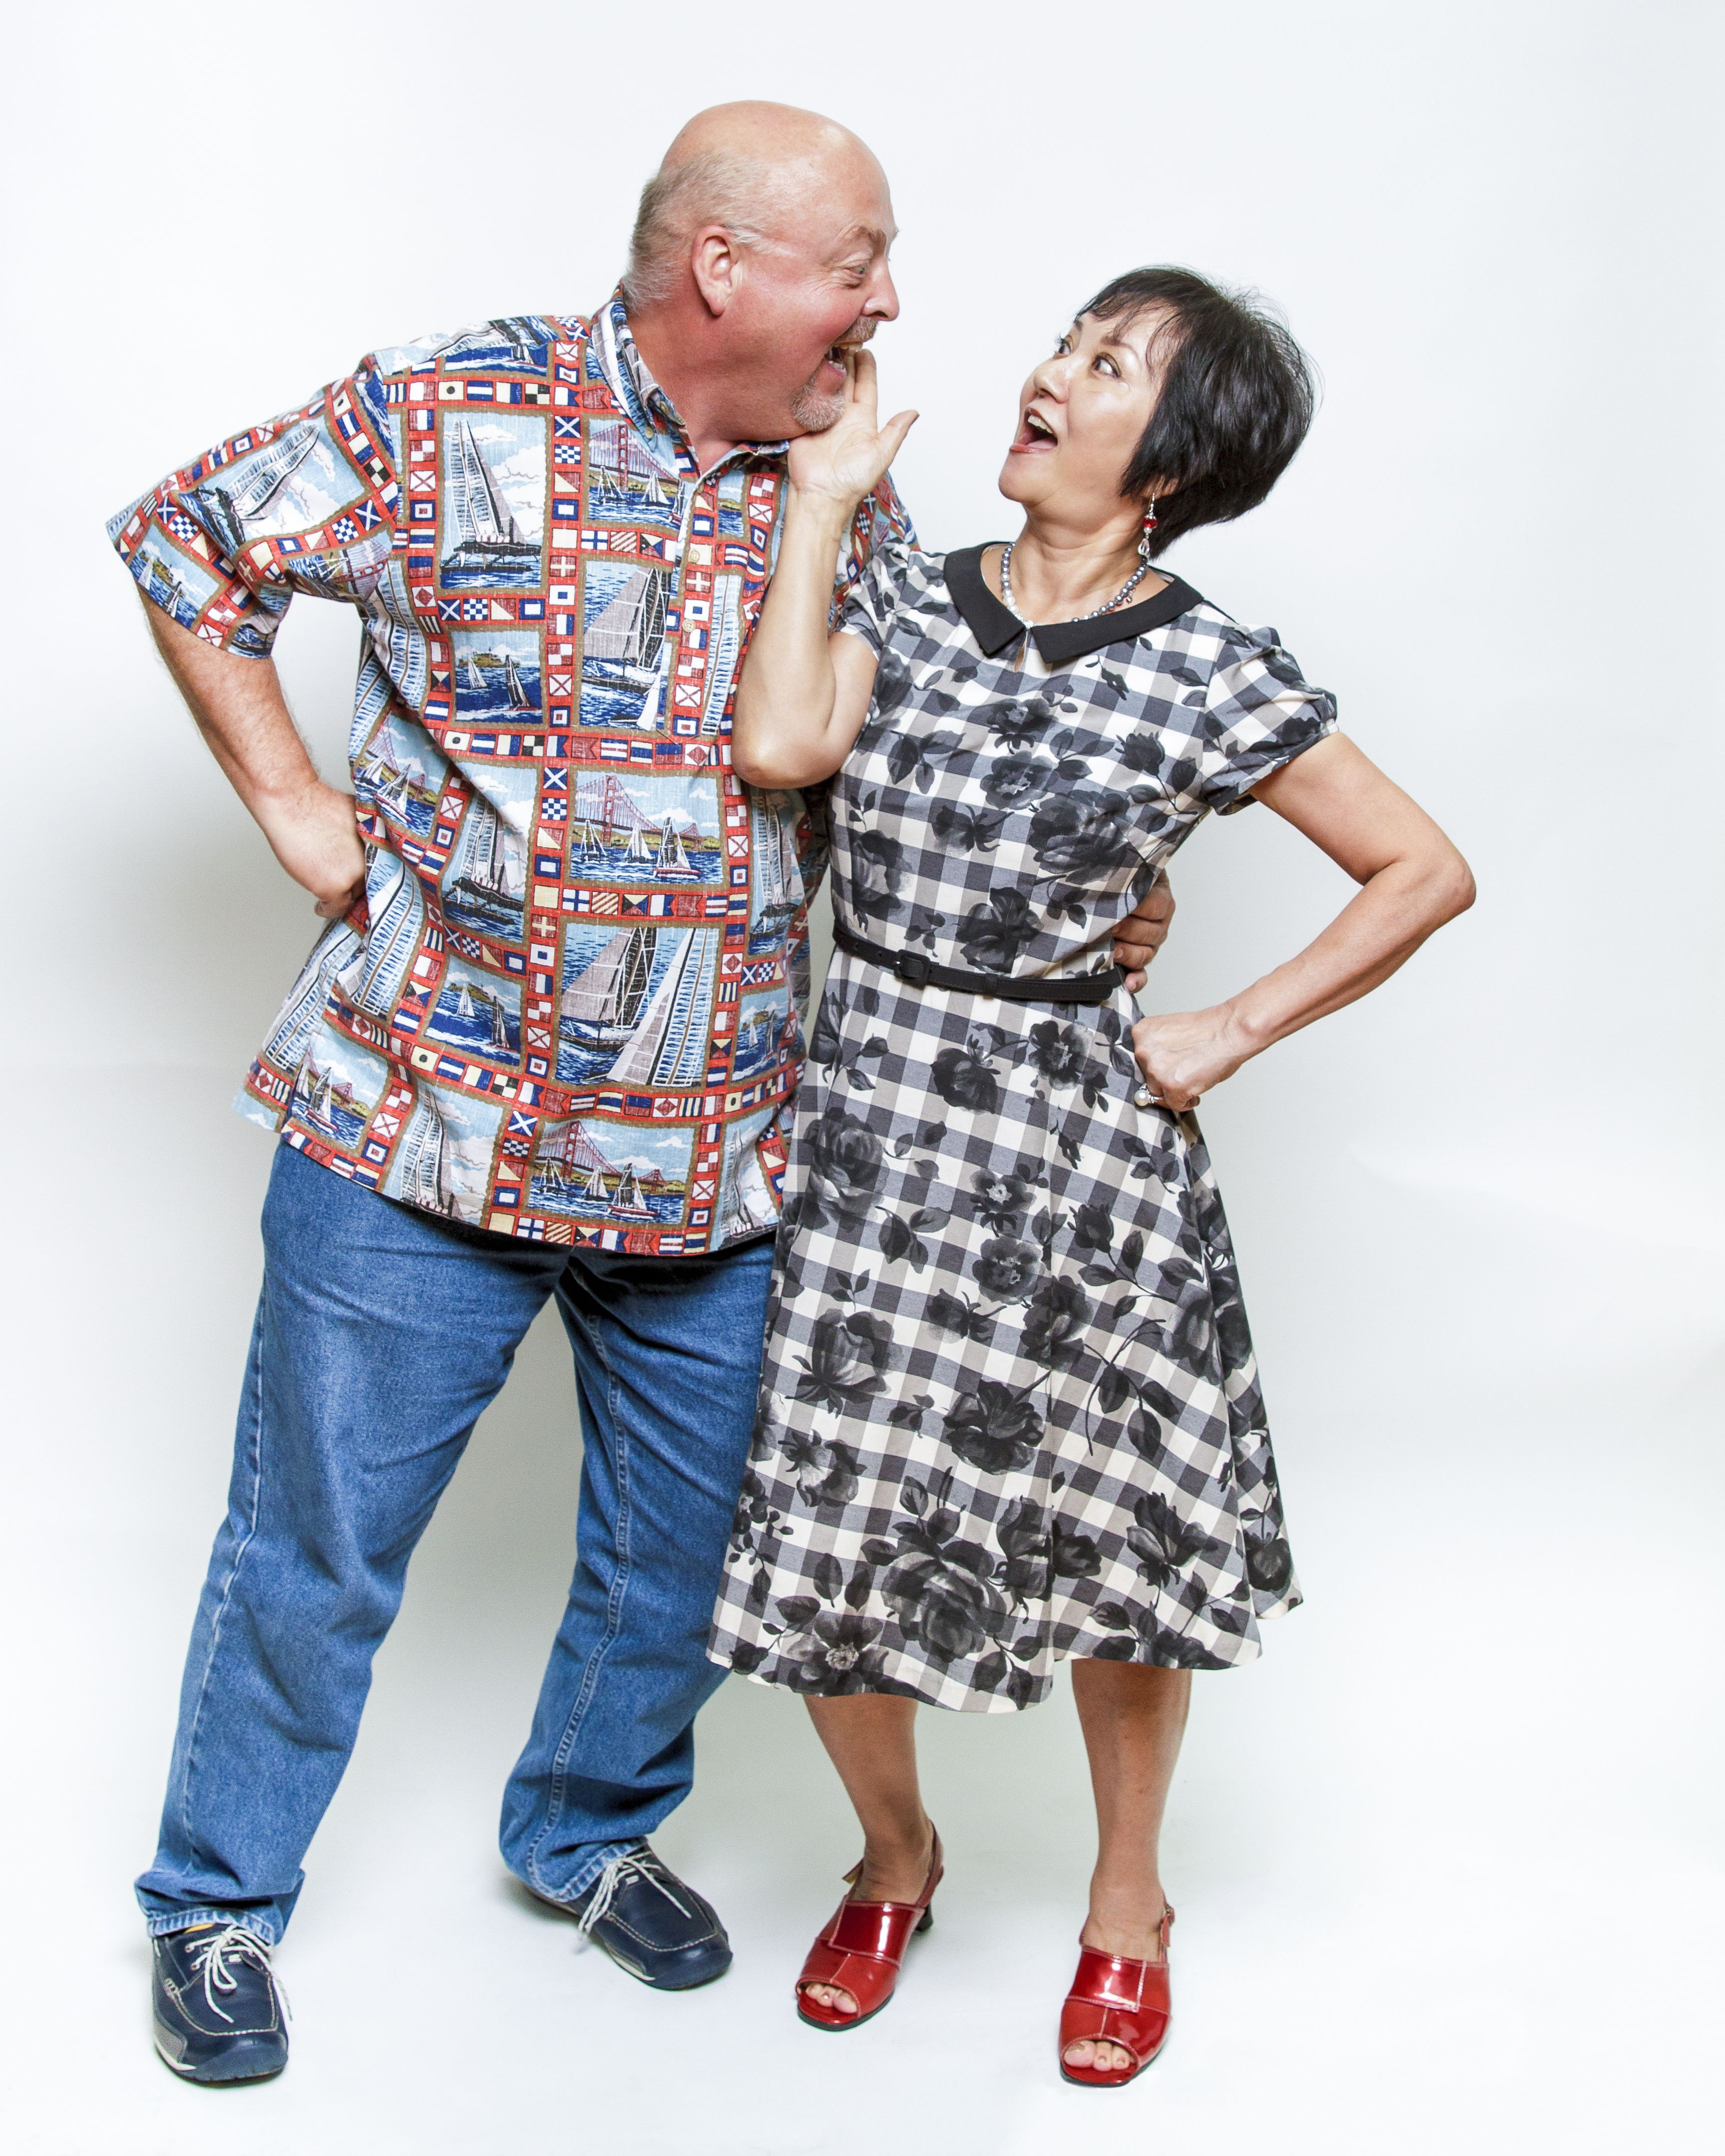 ms. mimiko and bob having a playful moment in the studio. | toute